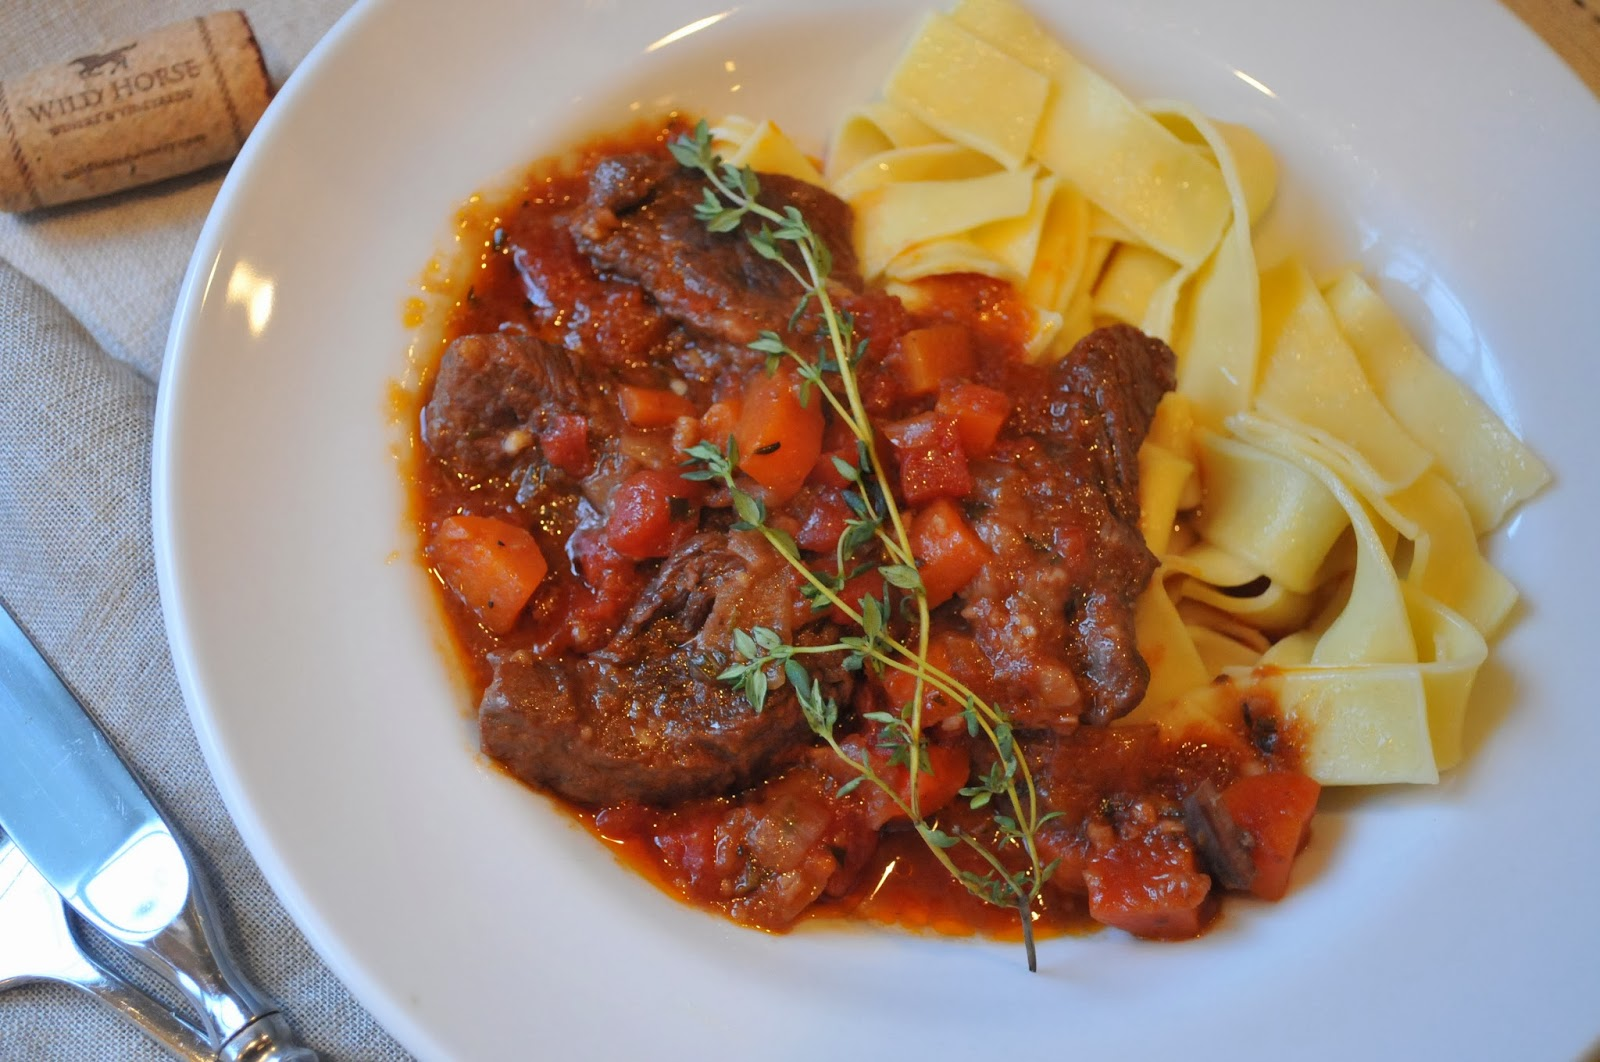 Beef daube or French beef stew recipe - Laylita's Recipes